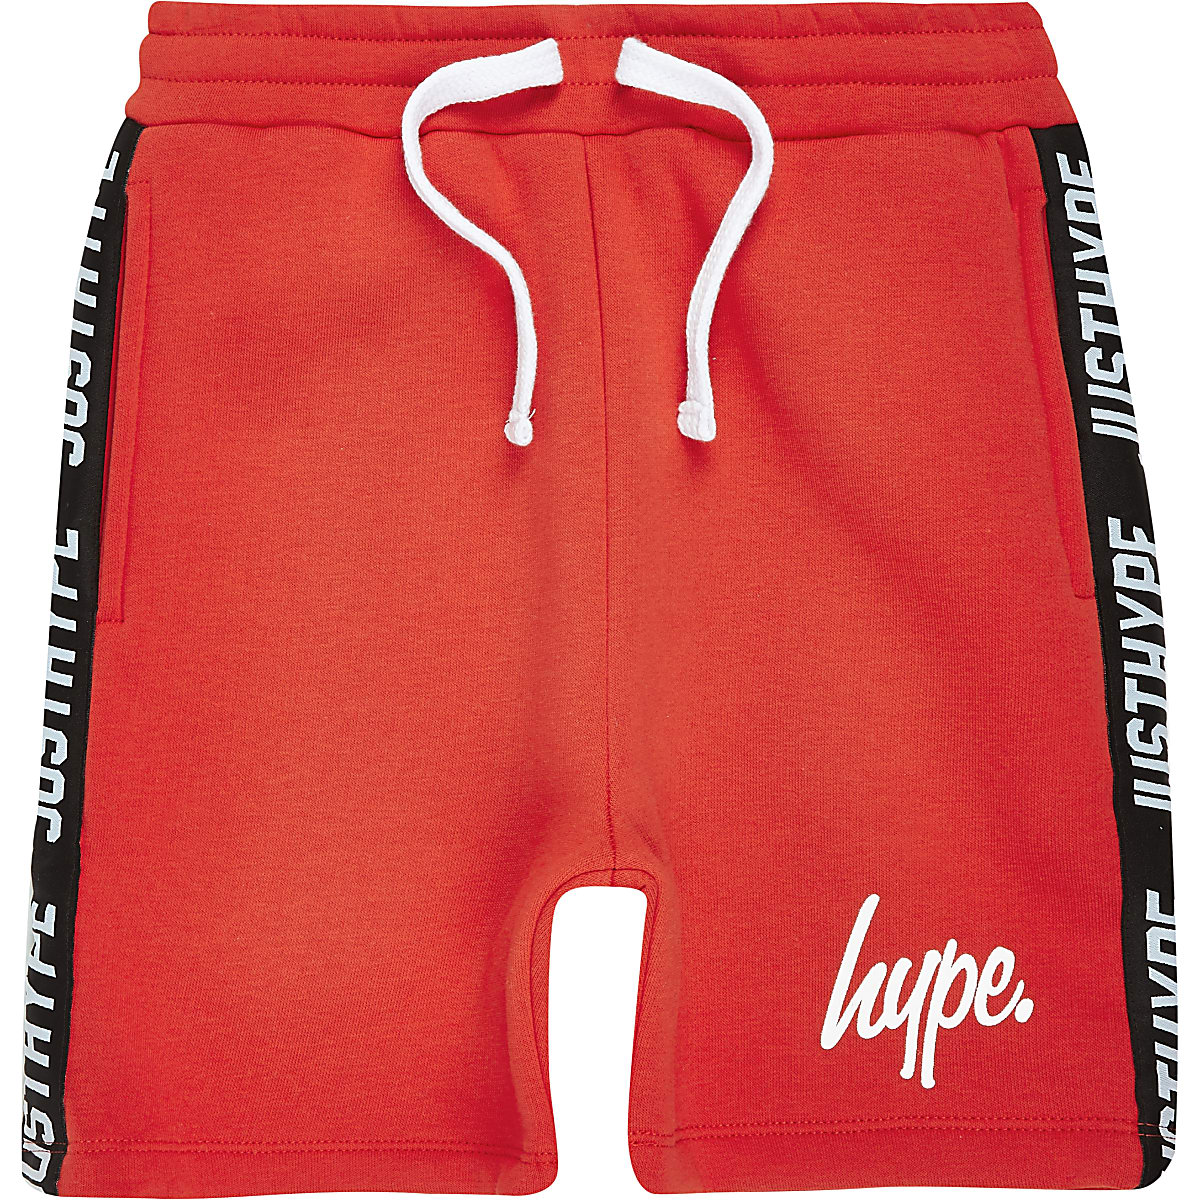 Boys red Hype jersey shorts